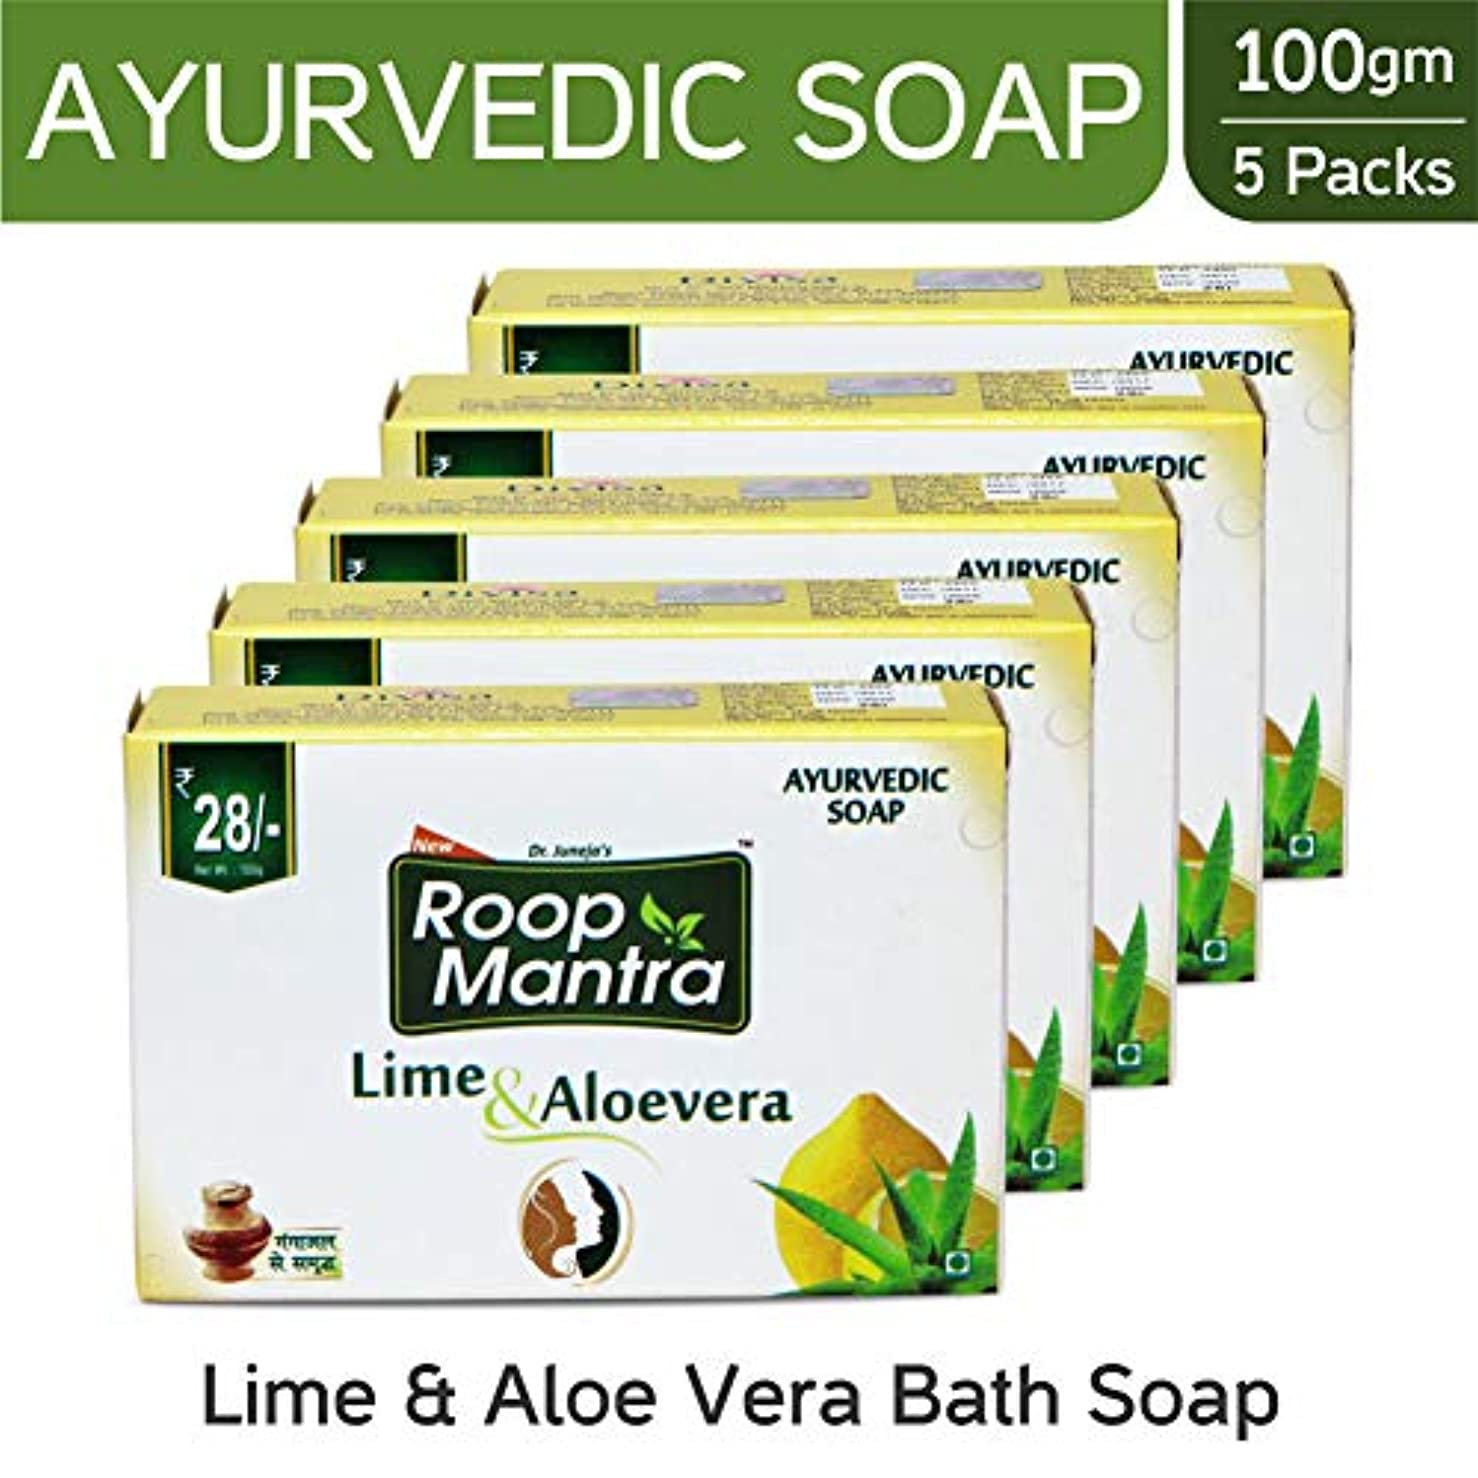 神経障害パンサー老朽化したRoop Mantra Ayurvedic Bath Soap, Lime and Aloevera, 100g (Pack of 5)